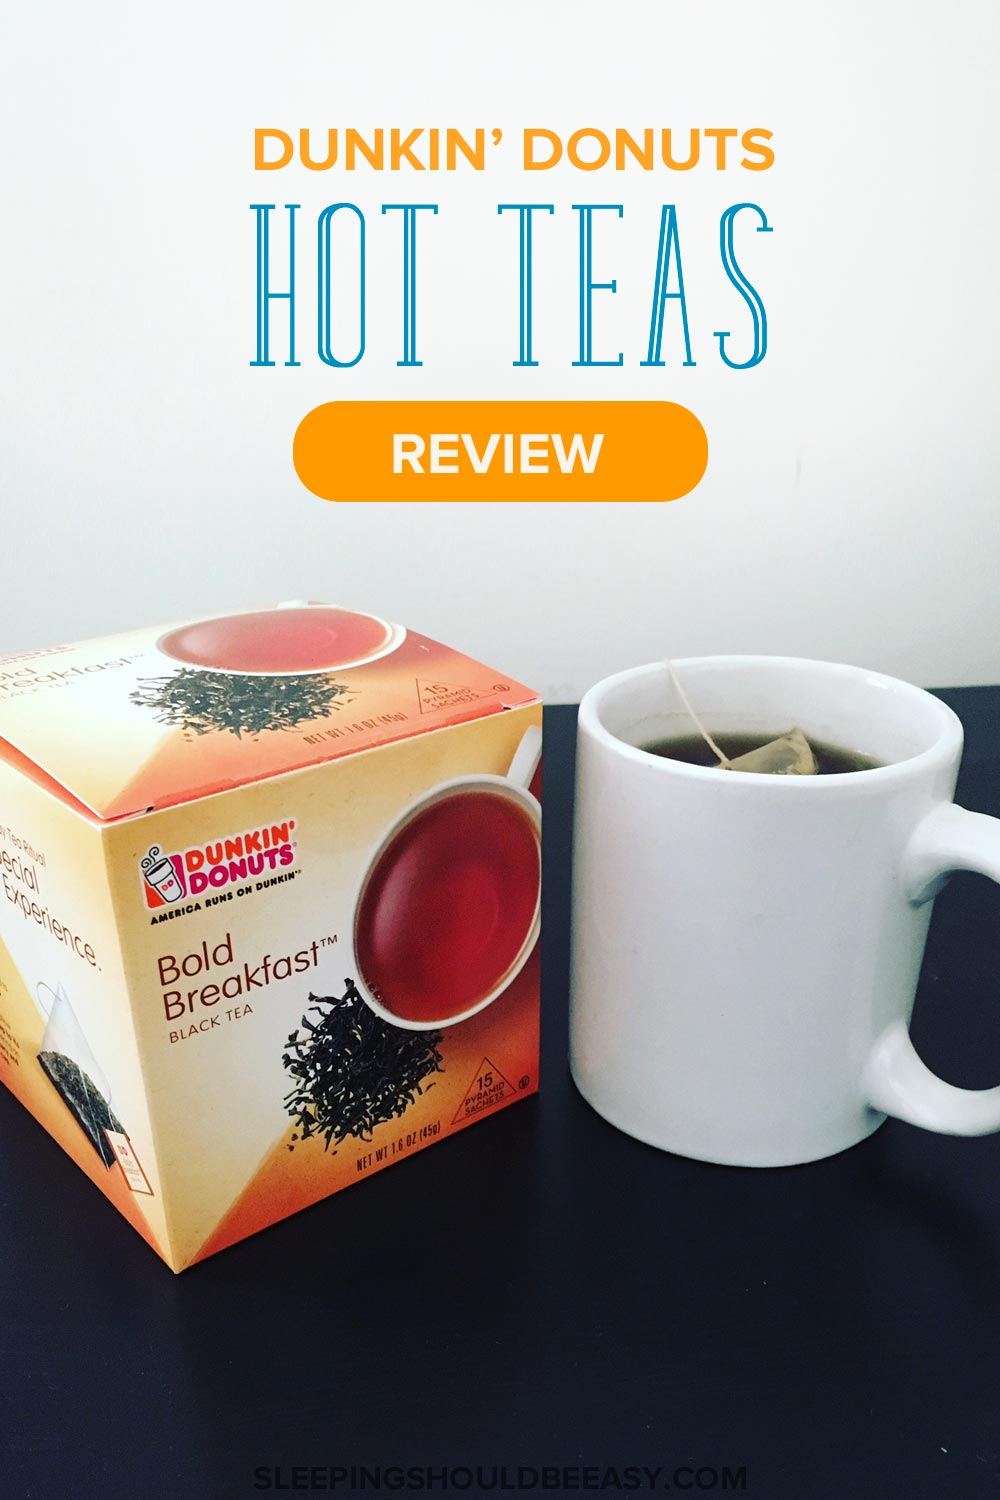 Everyone loves Dunkin' Donuts, but did you know they also feature five new hot tea flavors? See what the new Dunkin Donuts hot tea selections are about!